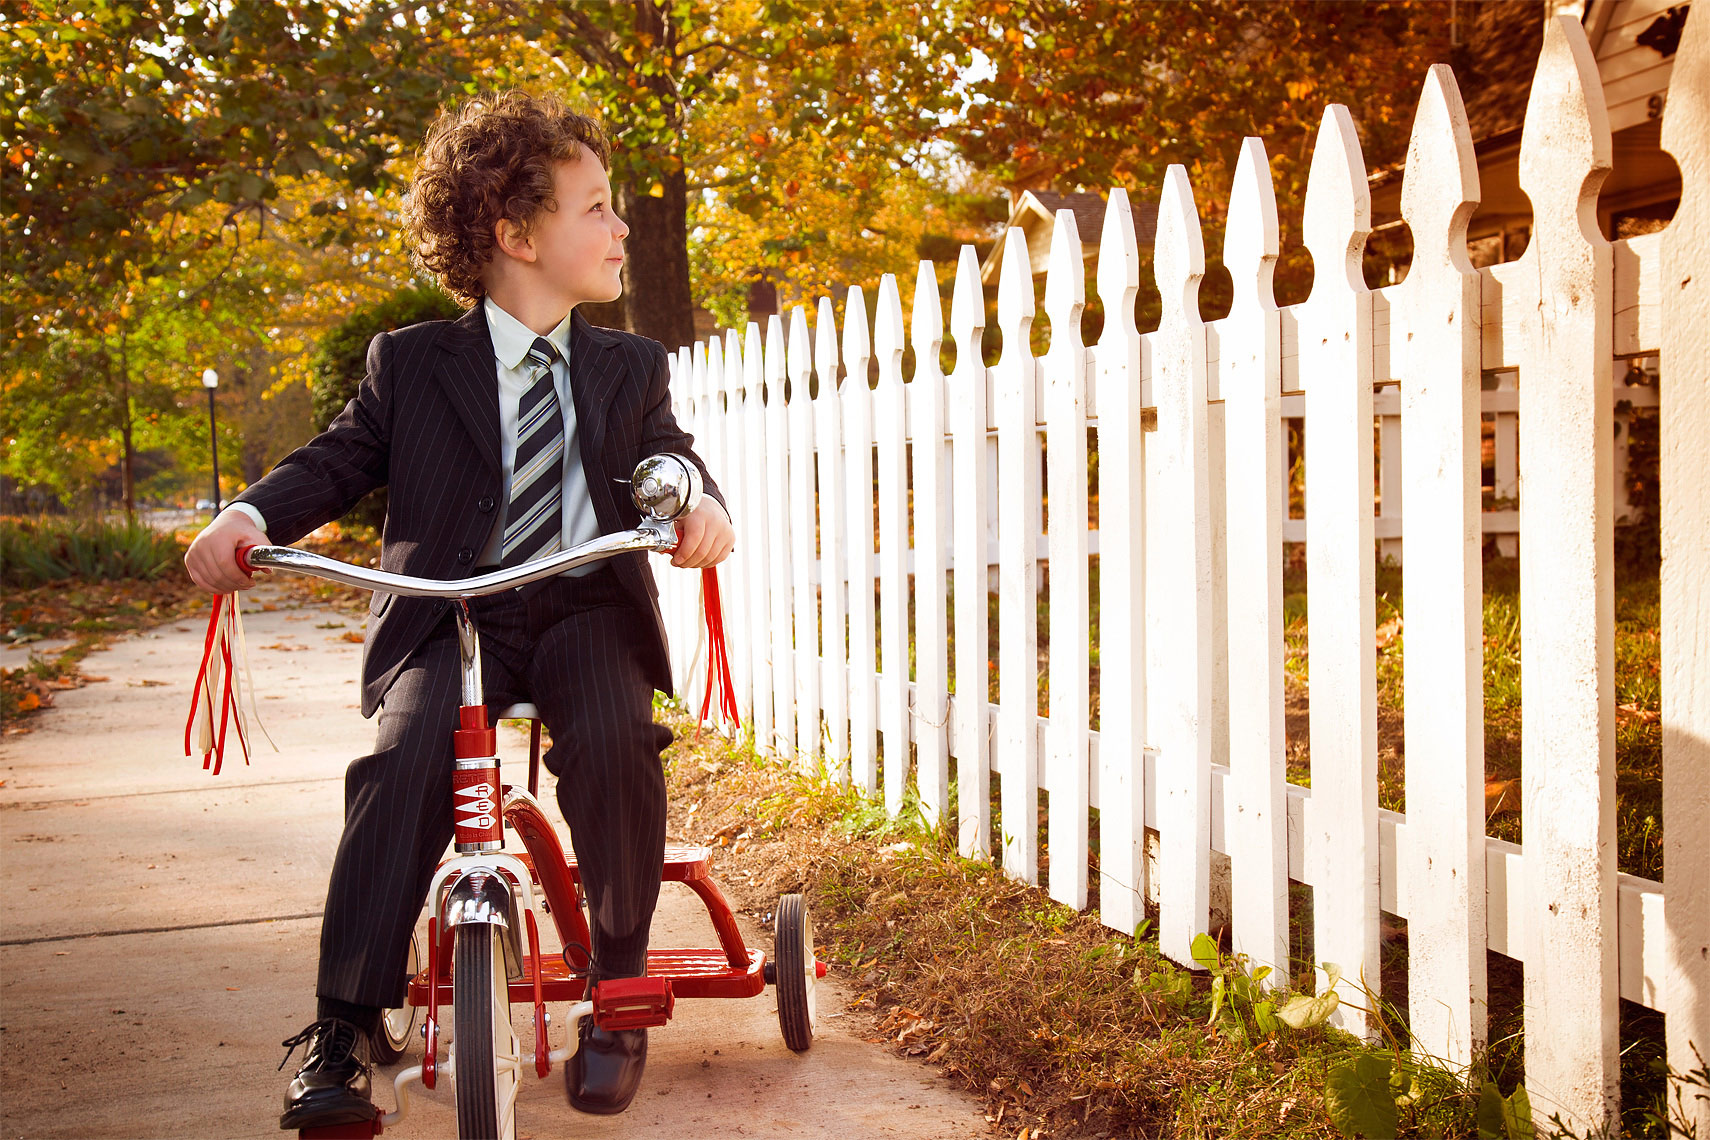 scott-stewart-lifestyle-portrait-child-riding-tricycle-ann-arbor-commercial-photographer